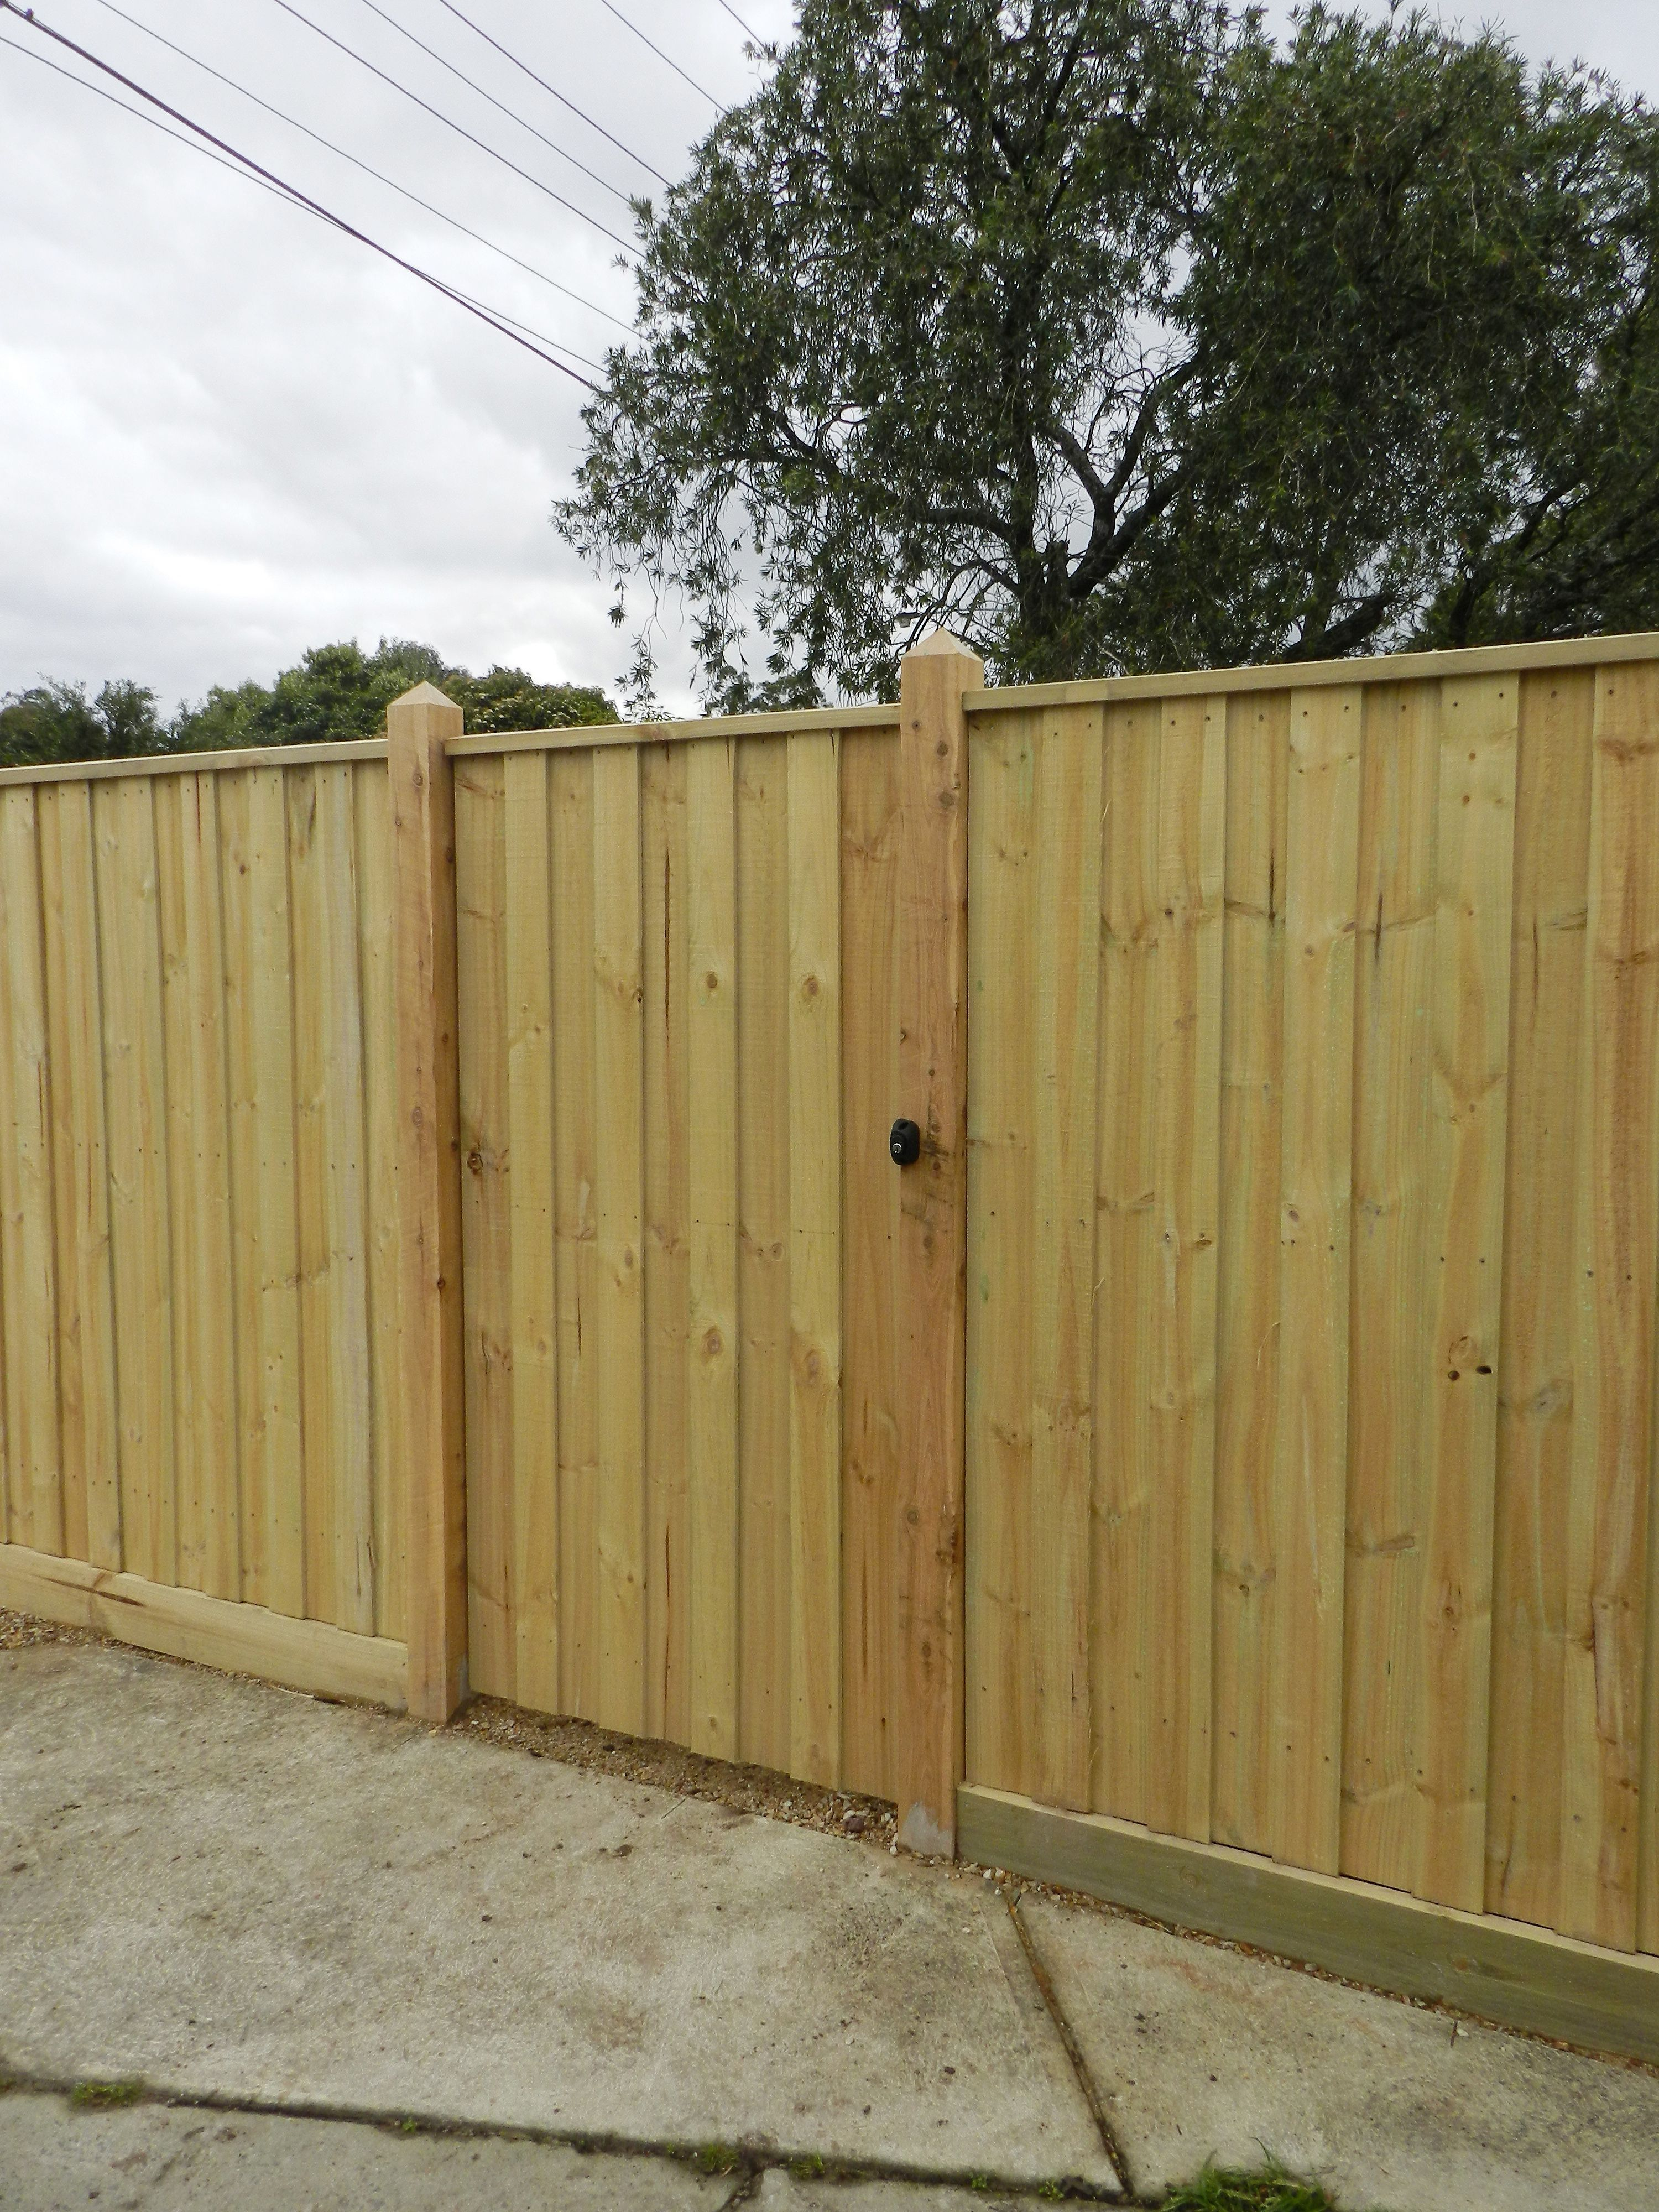 8 Astonishing Garden Fence Online Ideas In 2020 Backyard Fences Fence Landscaping Fence Design